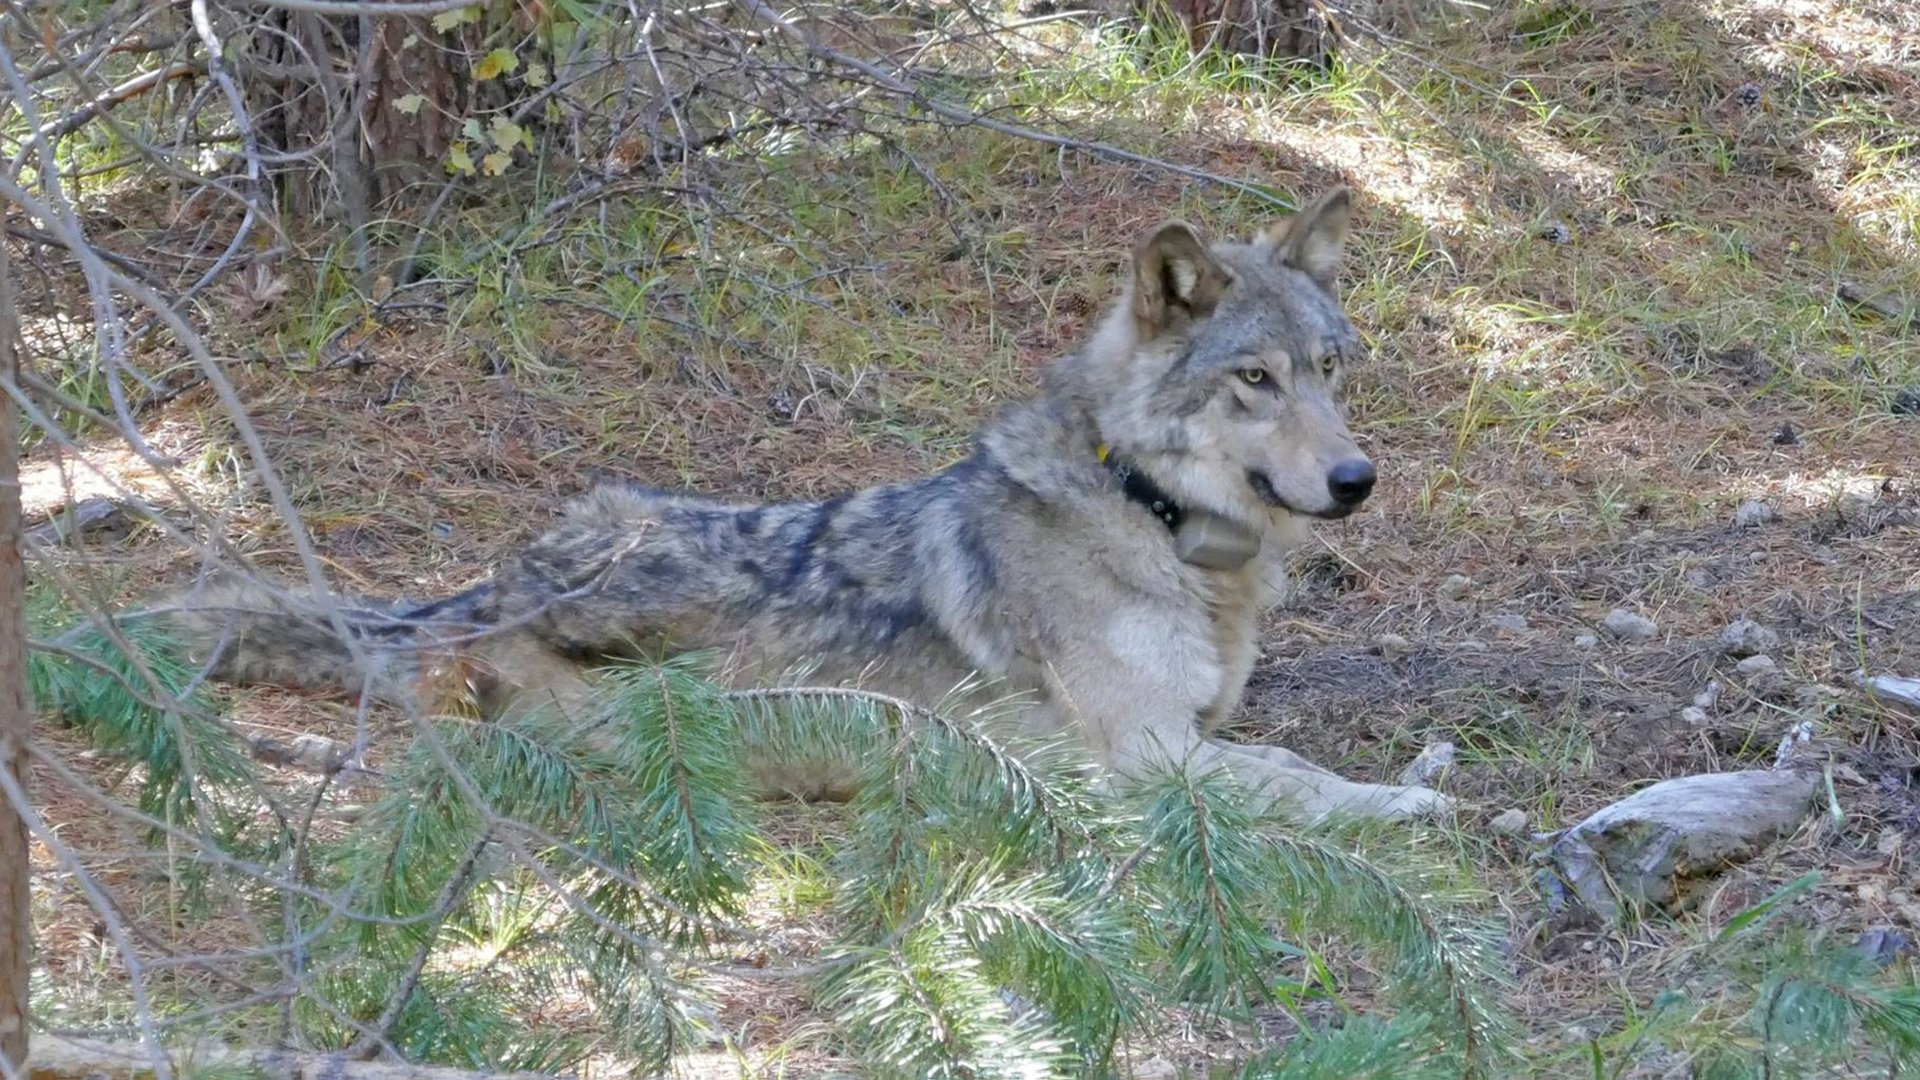 OR-54 is seen in a photo released by the Oregon Department of Fish and Wildlife on Oct. 13, 2017, shortly after she was collared.